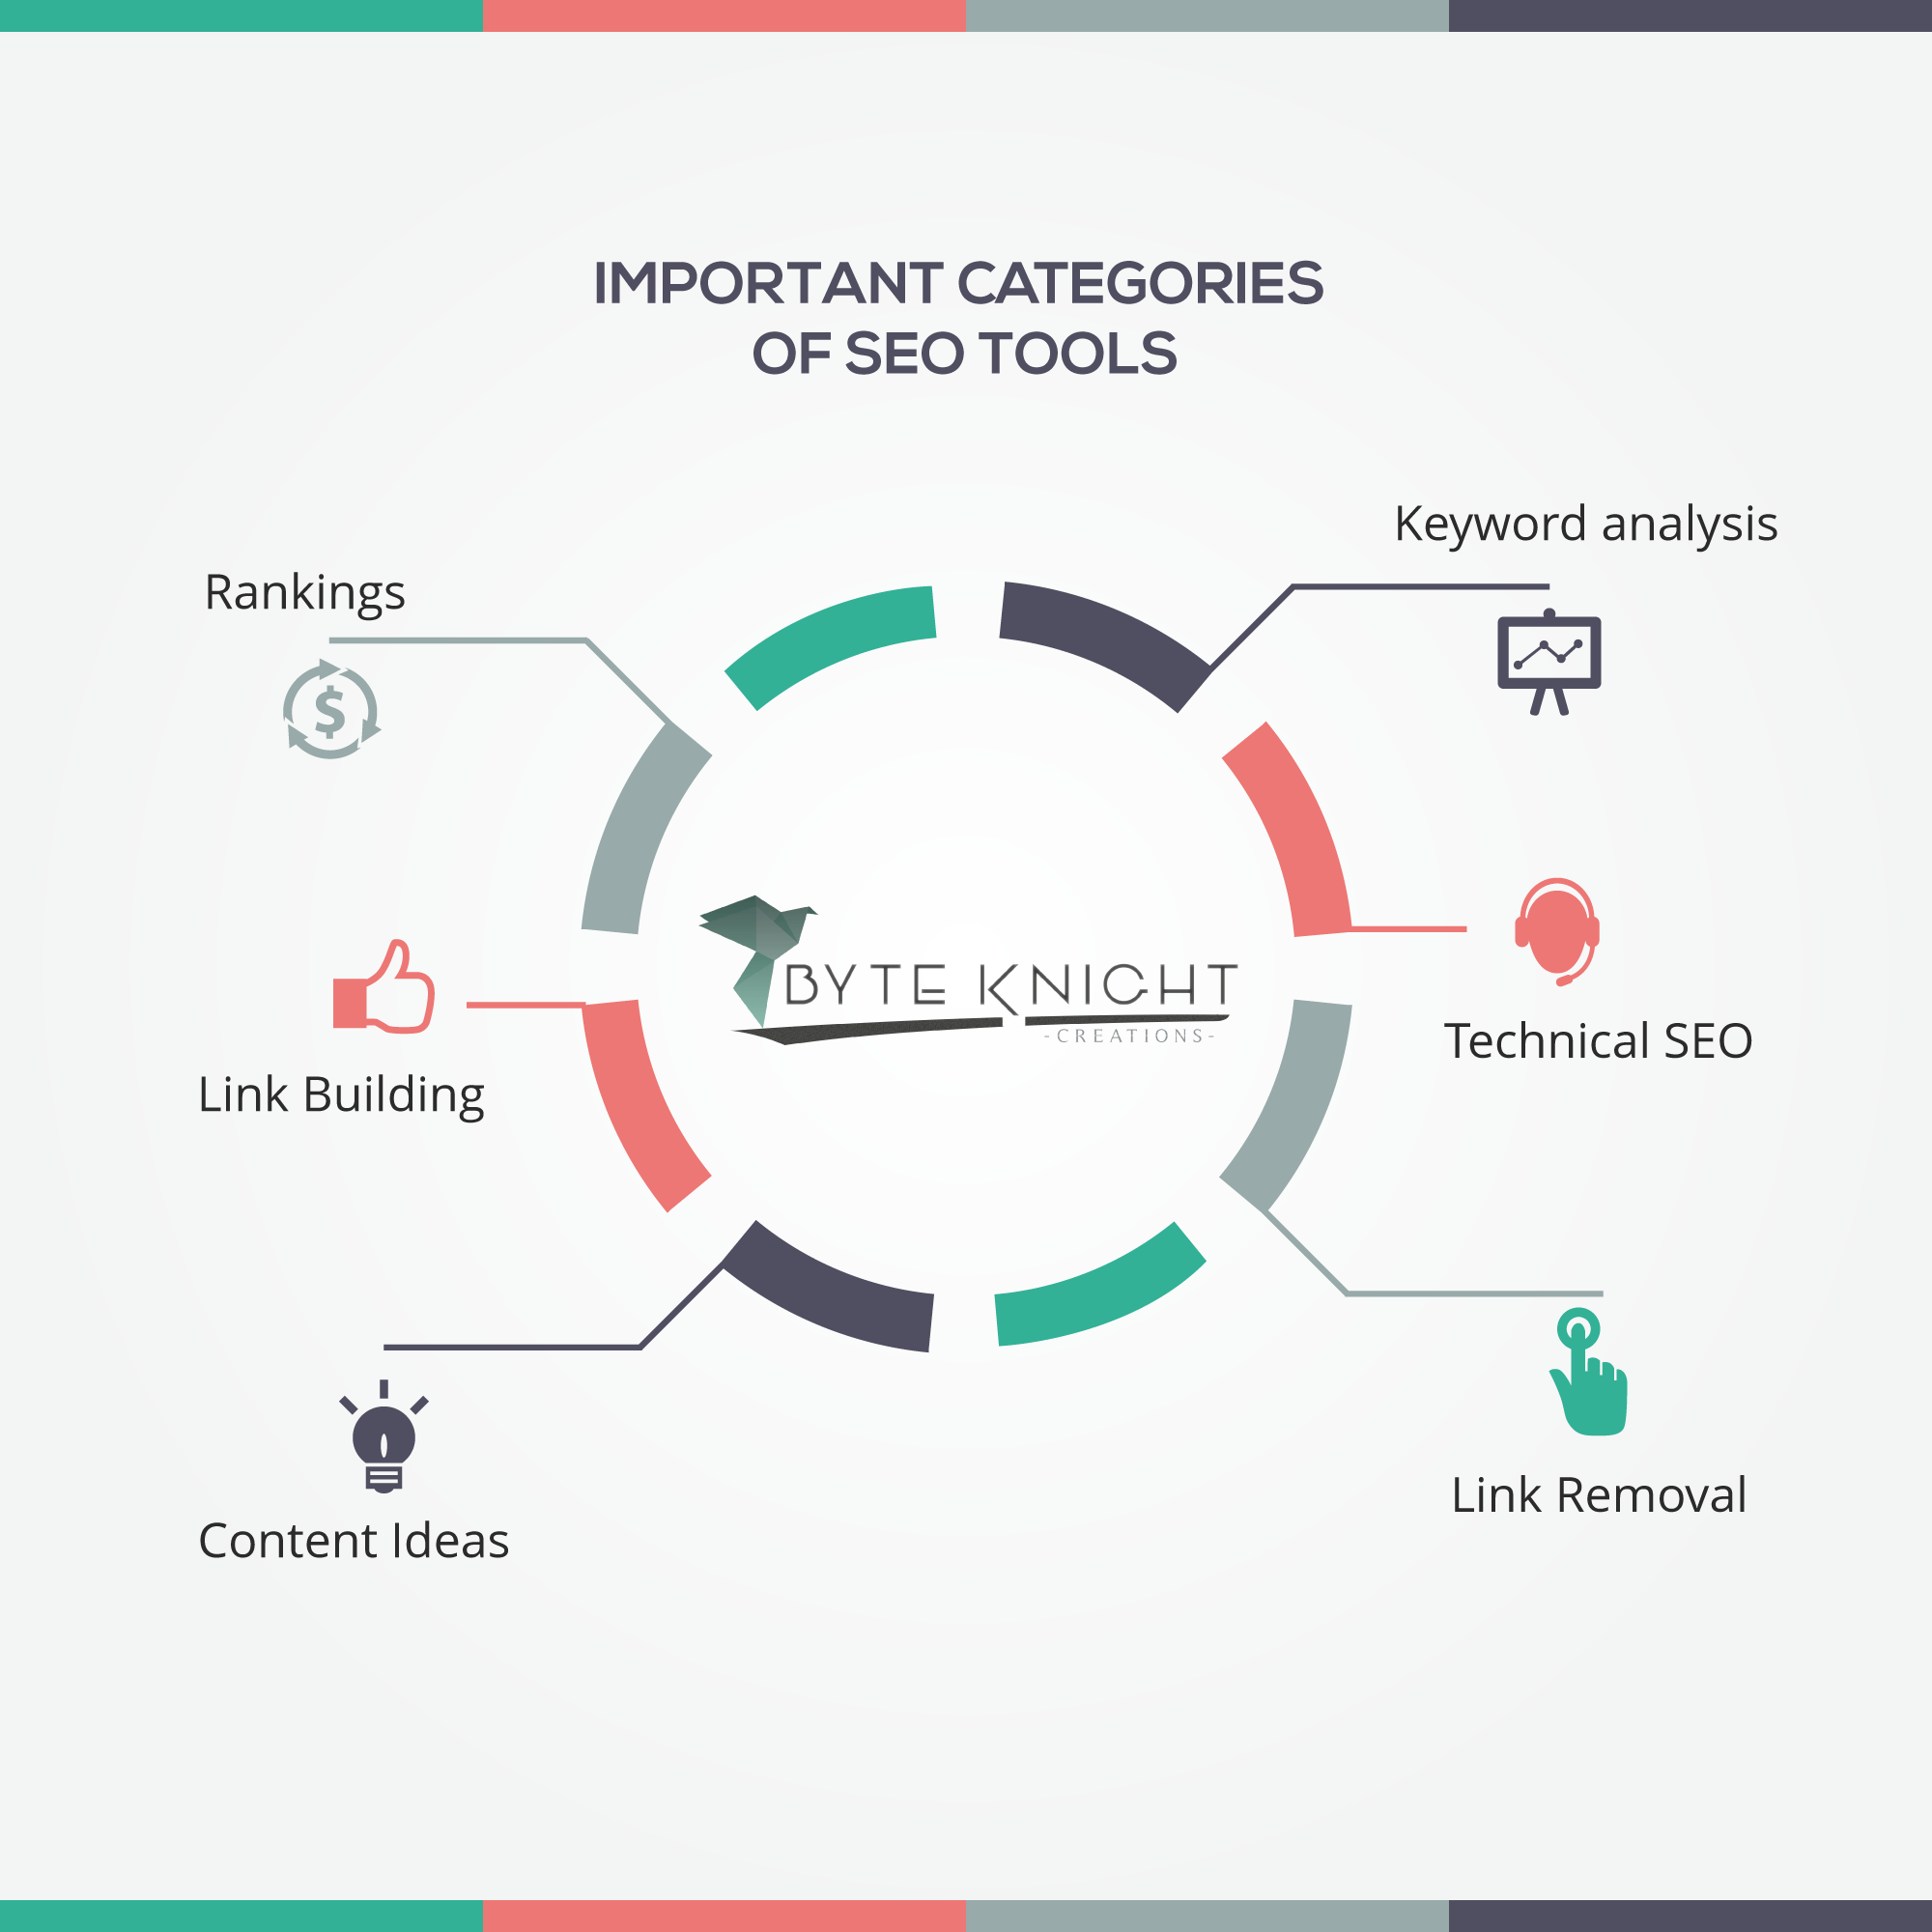 Important Categories Of SEO Tools For 2018